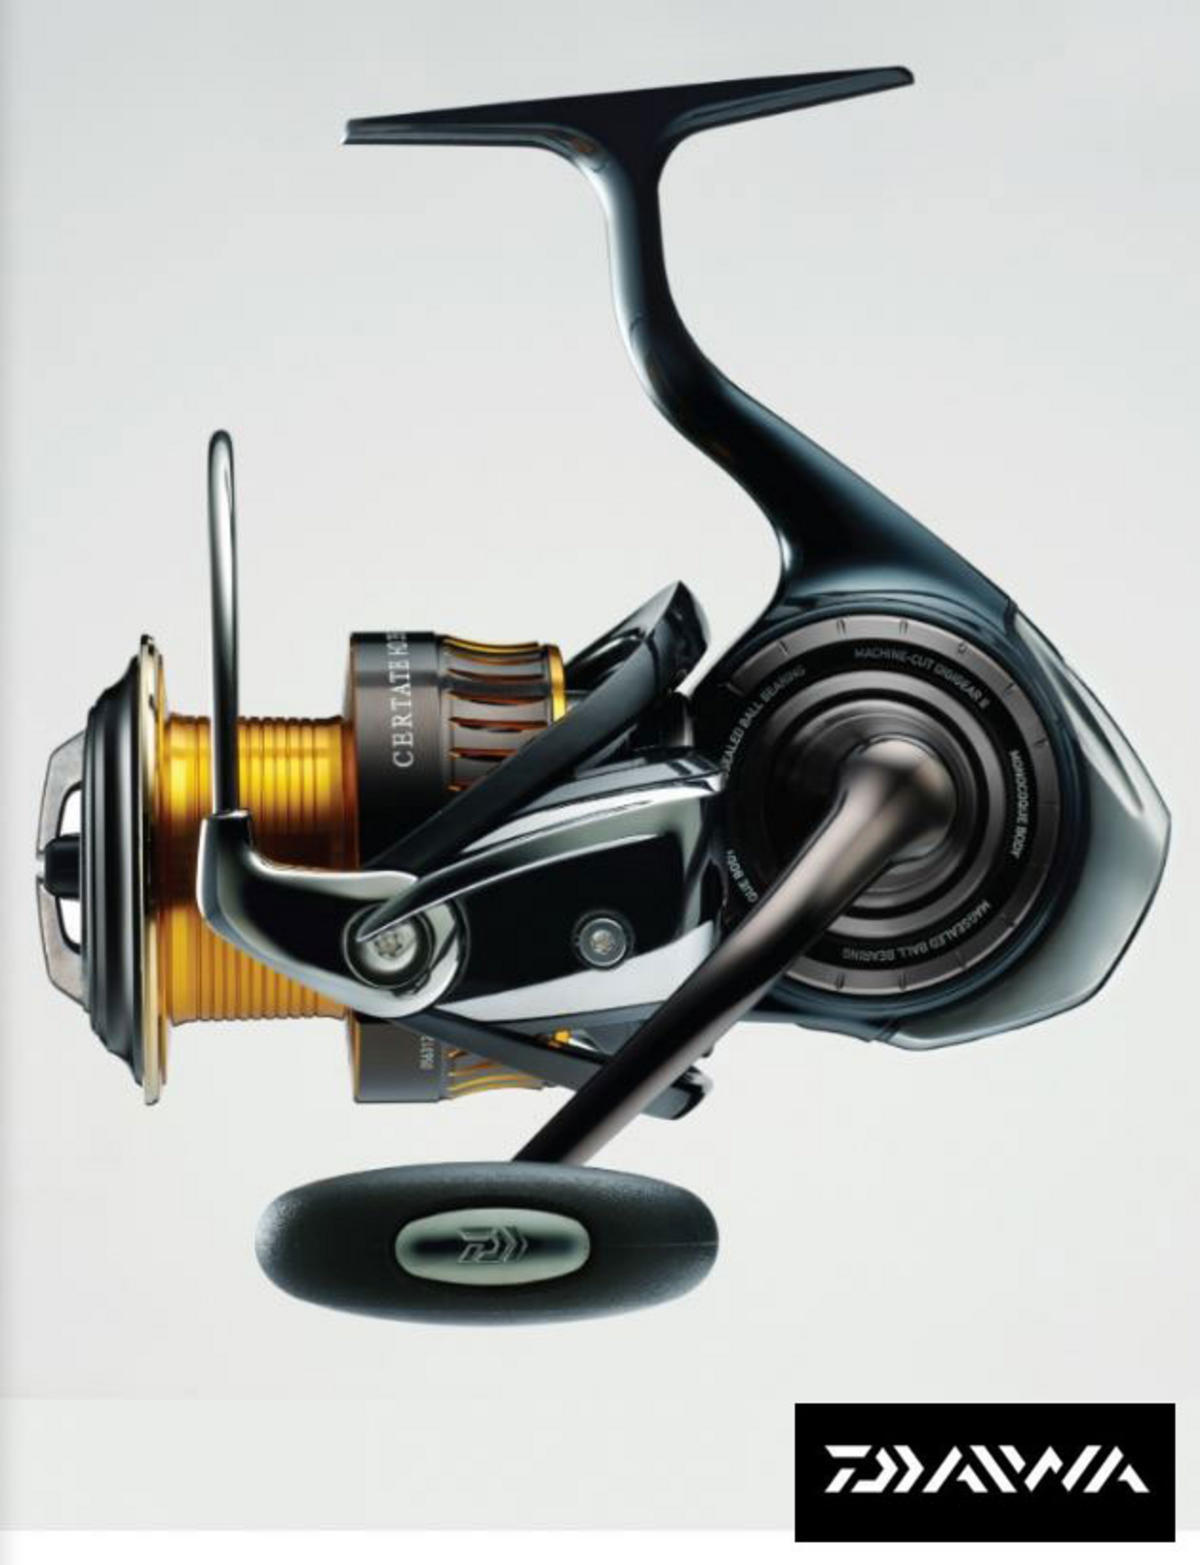 New Daiwa 16 Certate 2004CH Spinning Reel Model No. 16 CERTATE 2004CH